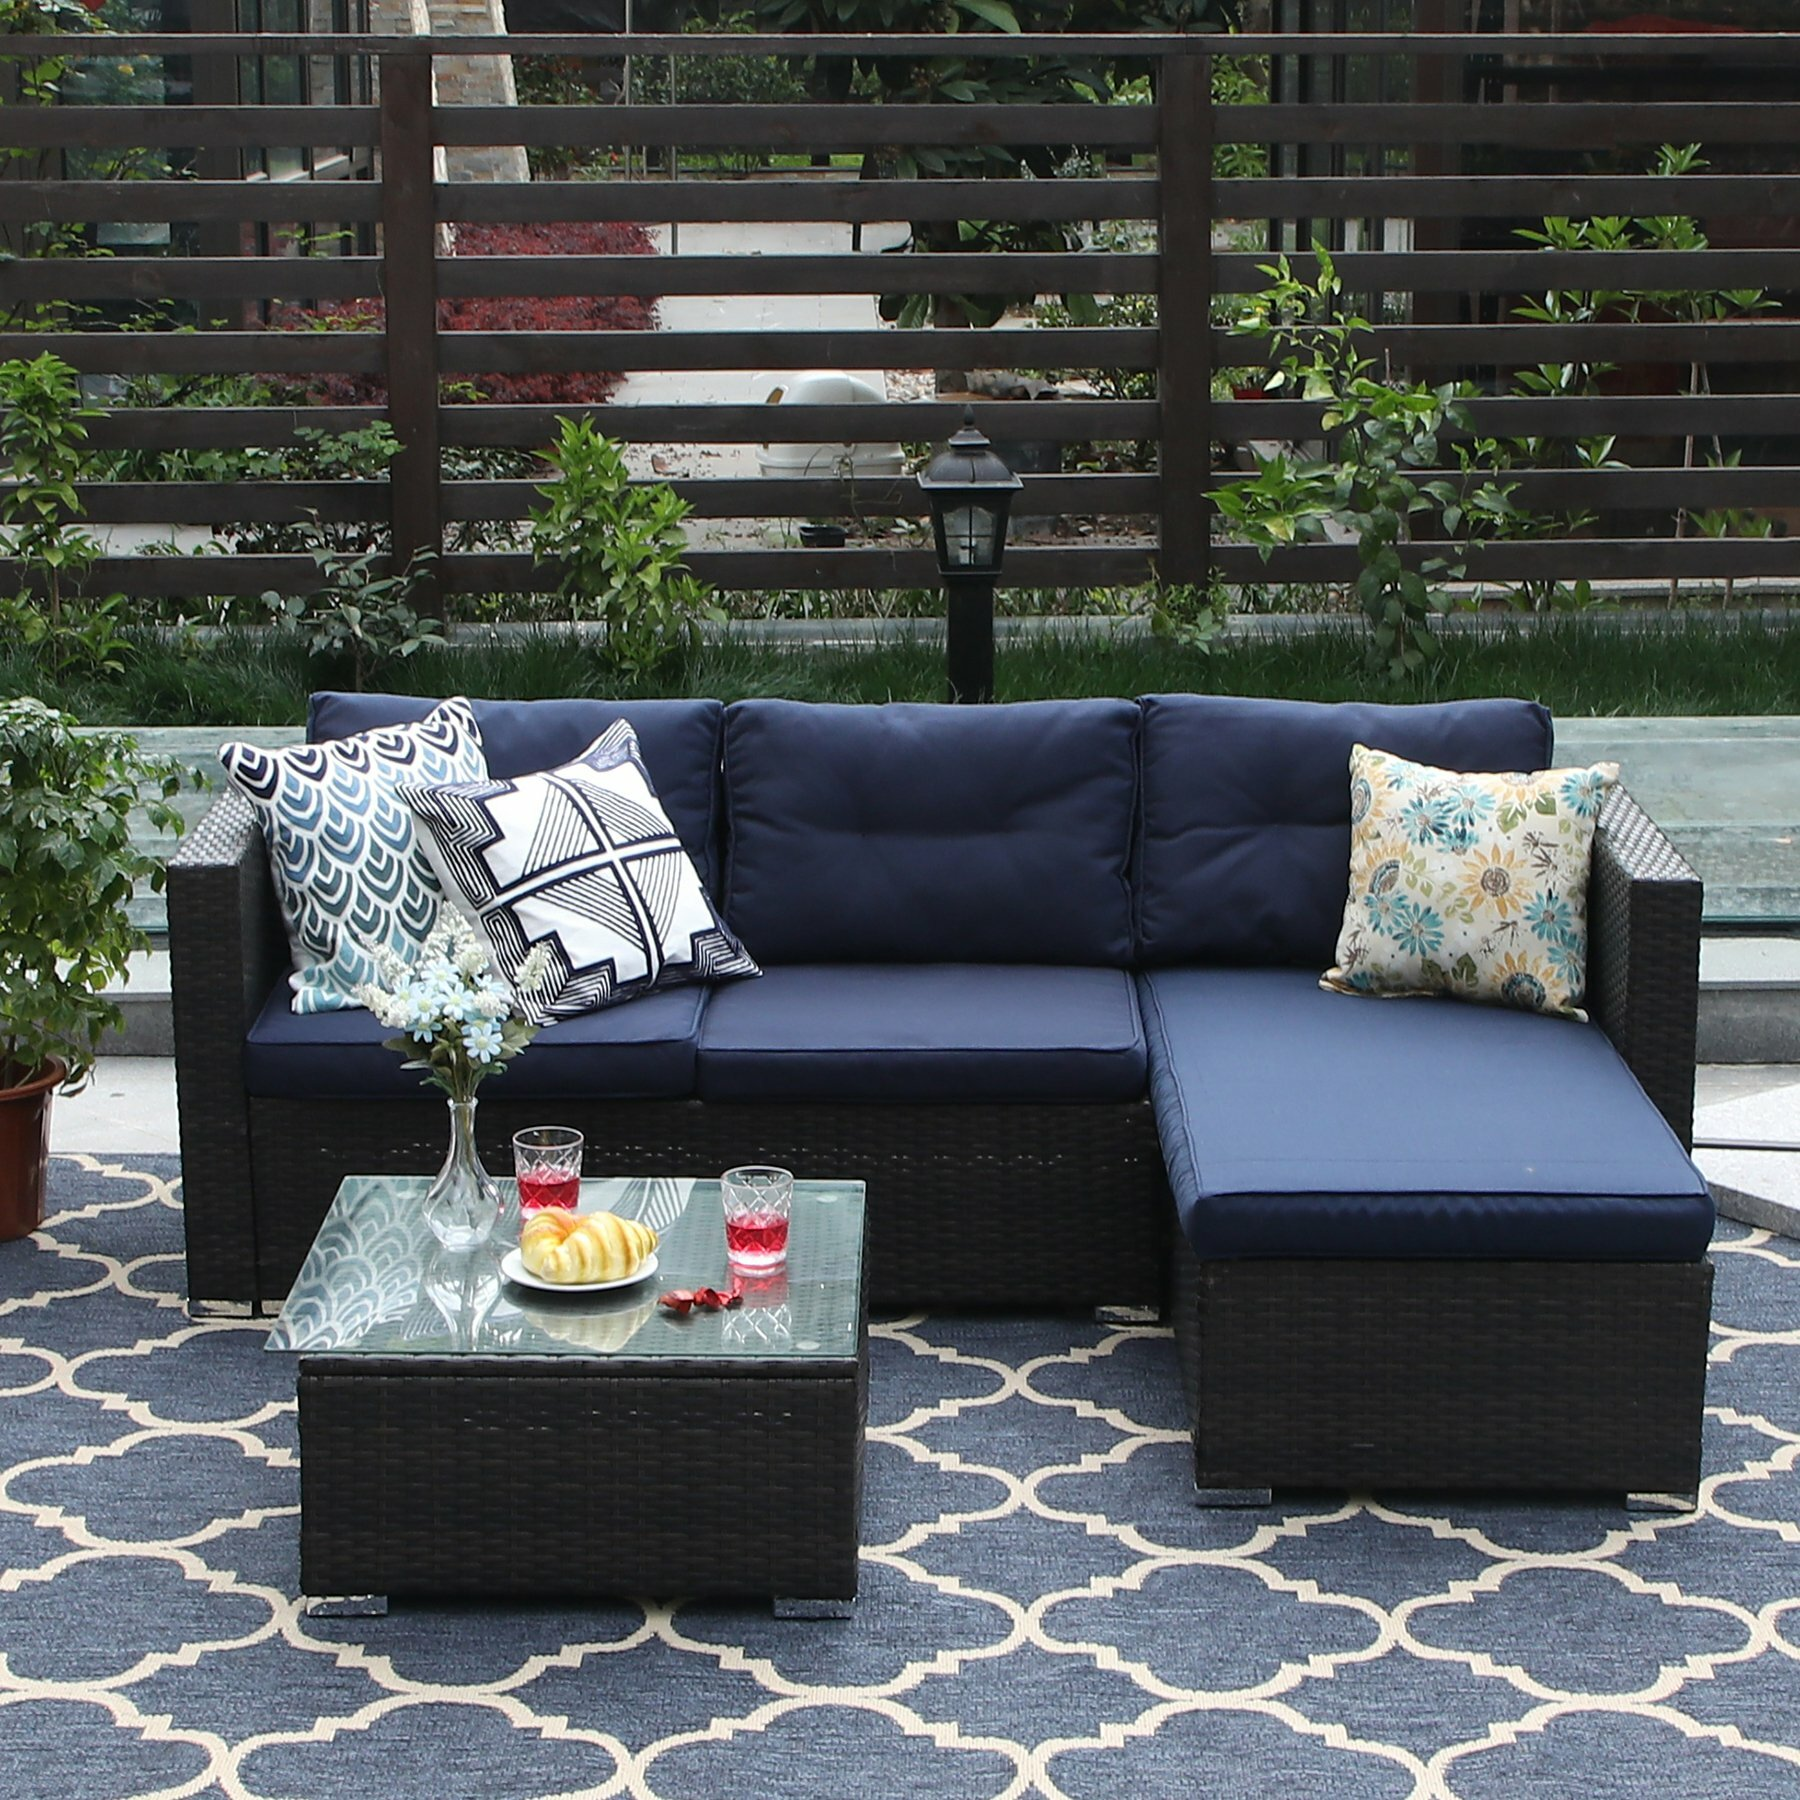 Steward Outdoor 3 Piece Rattan Sectional Sofa Set with Cushions